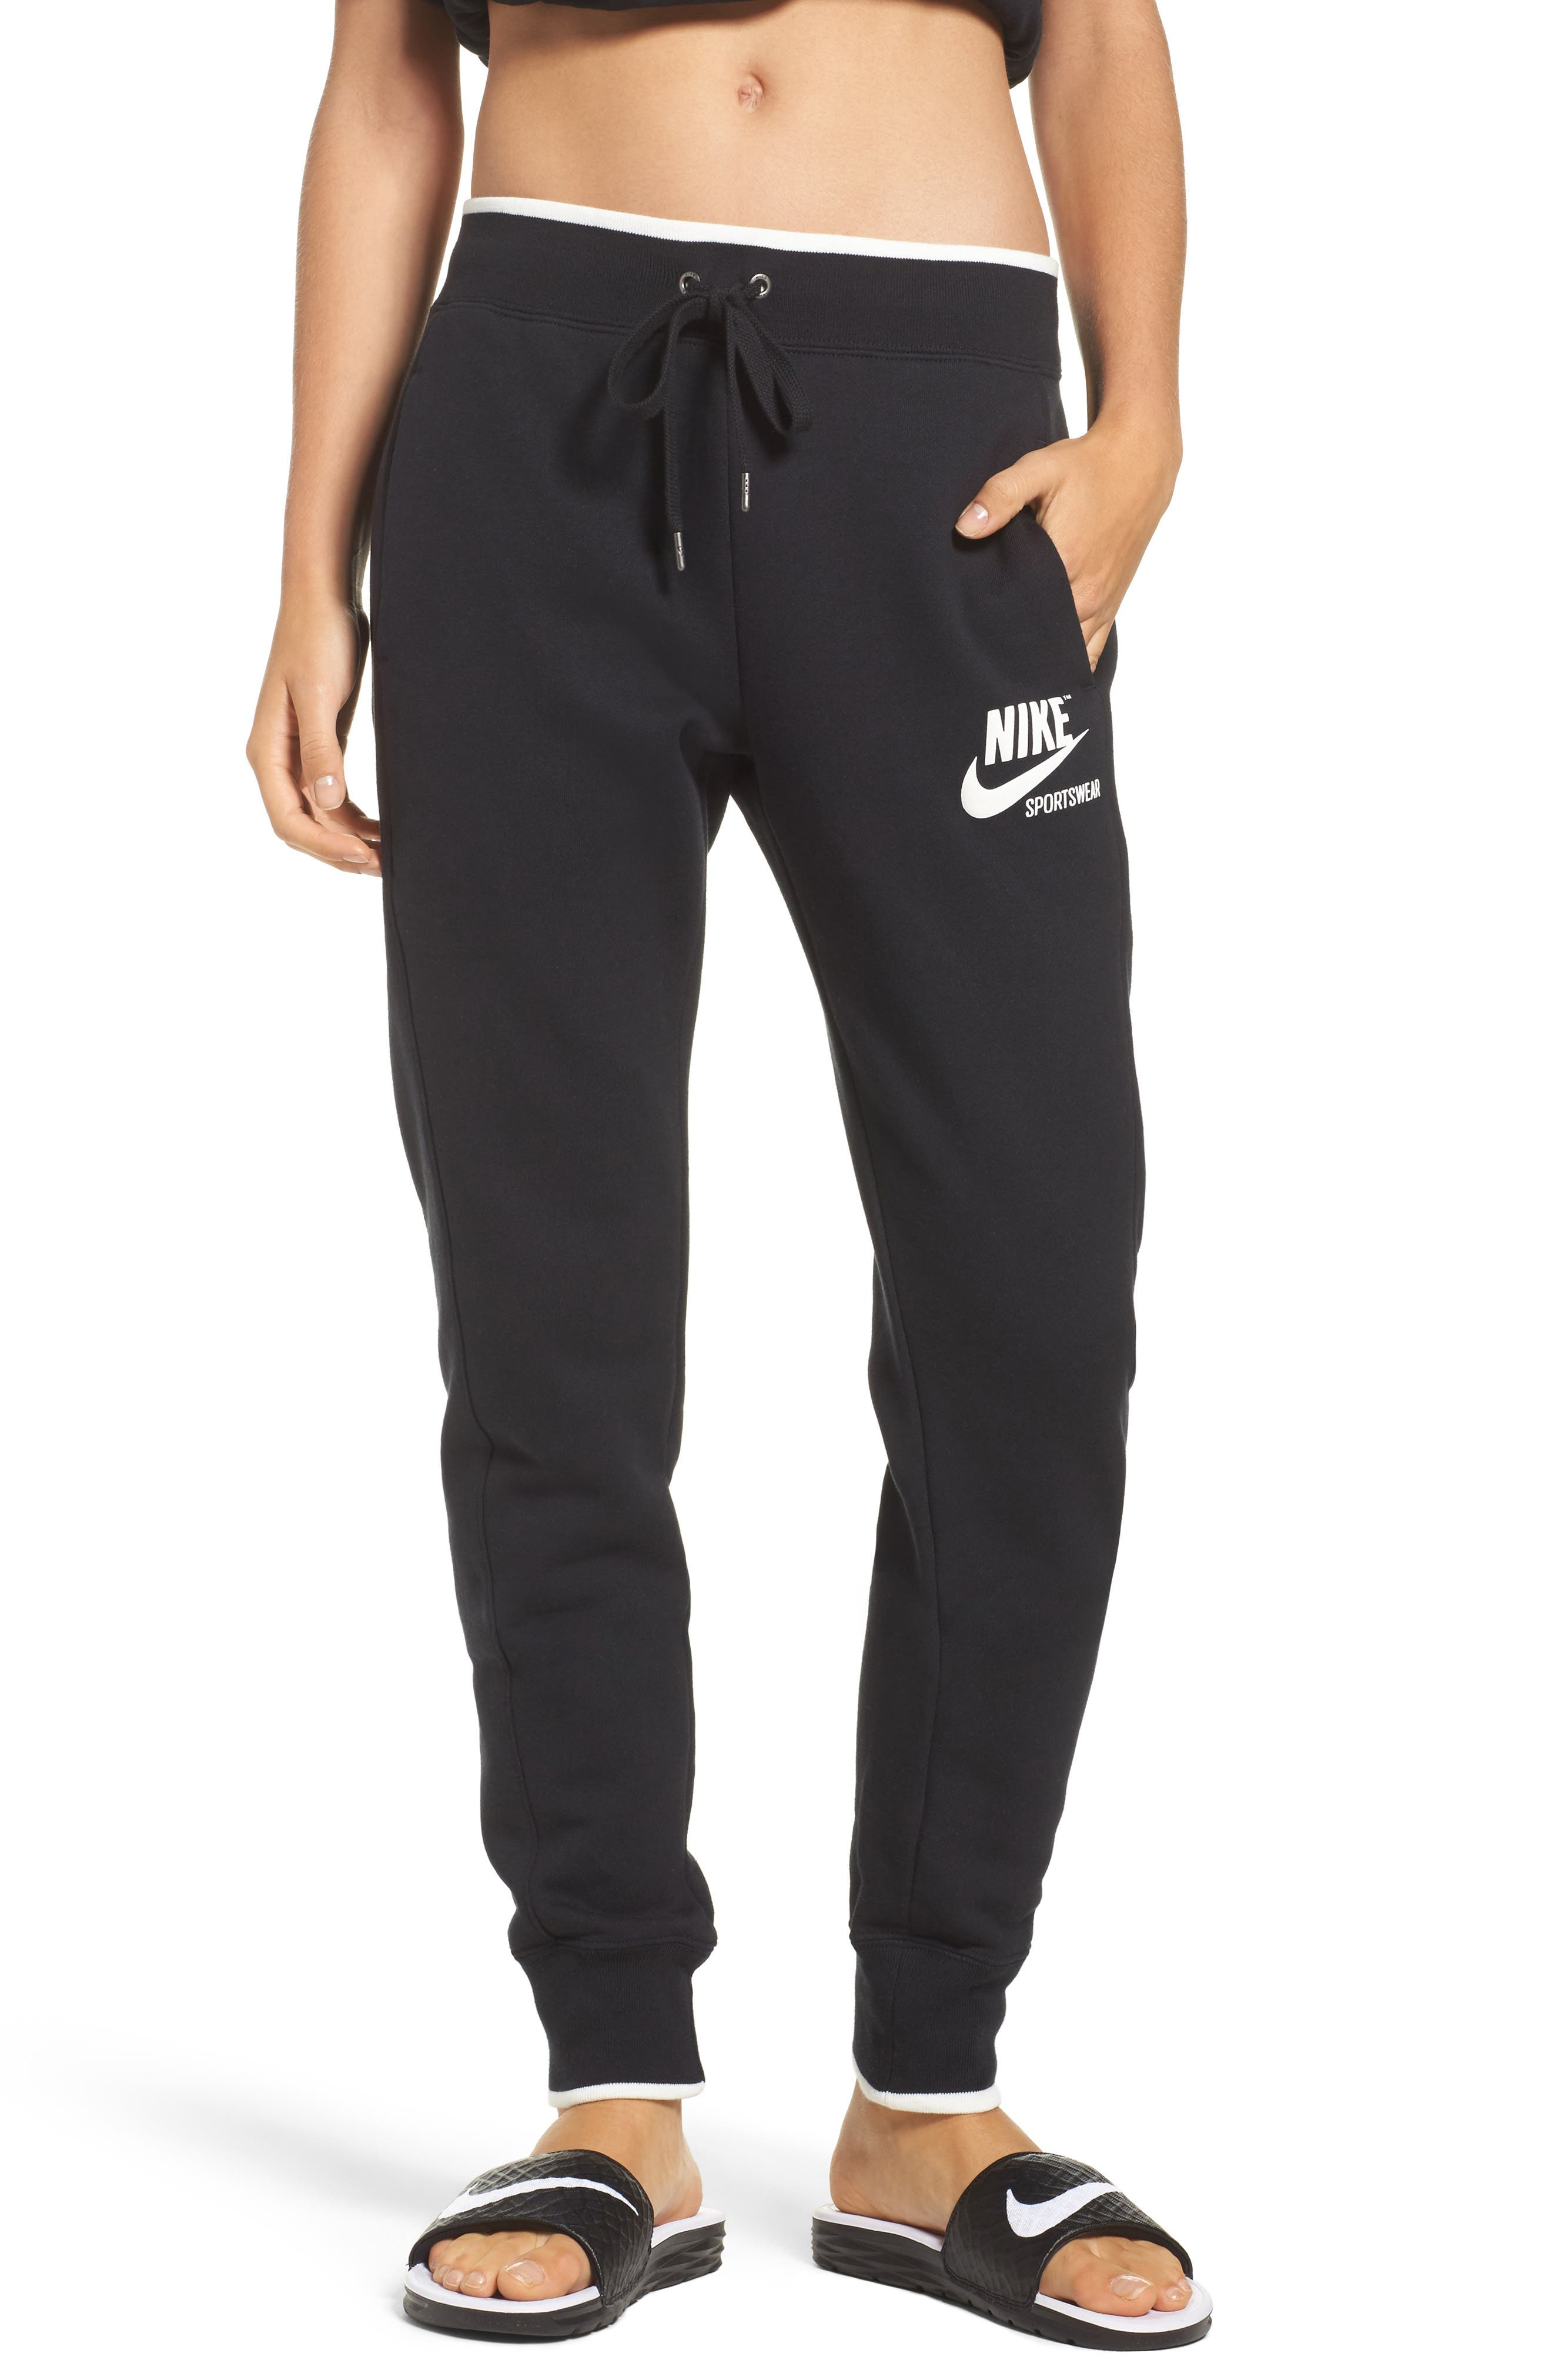 detailed look 05fc2 3c2f0 Contact. The Place Investment Group Inc. womens nike jogging suits